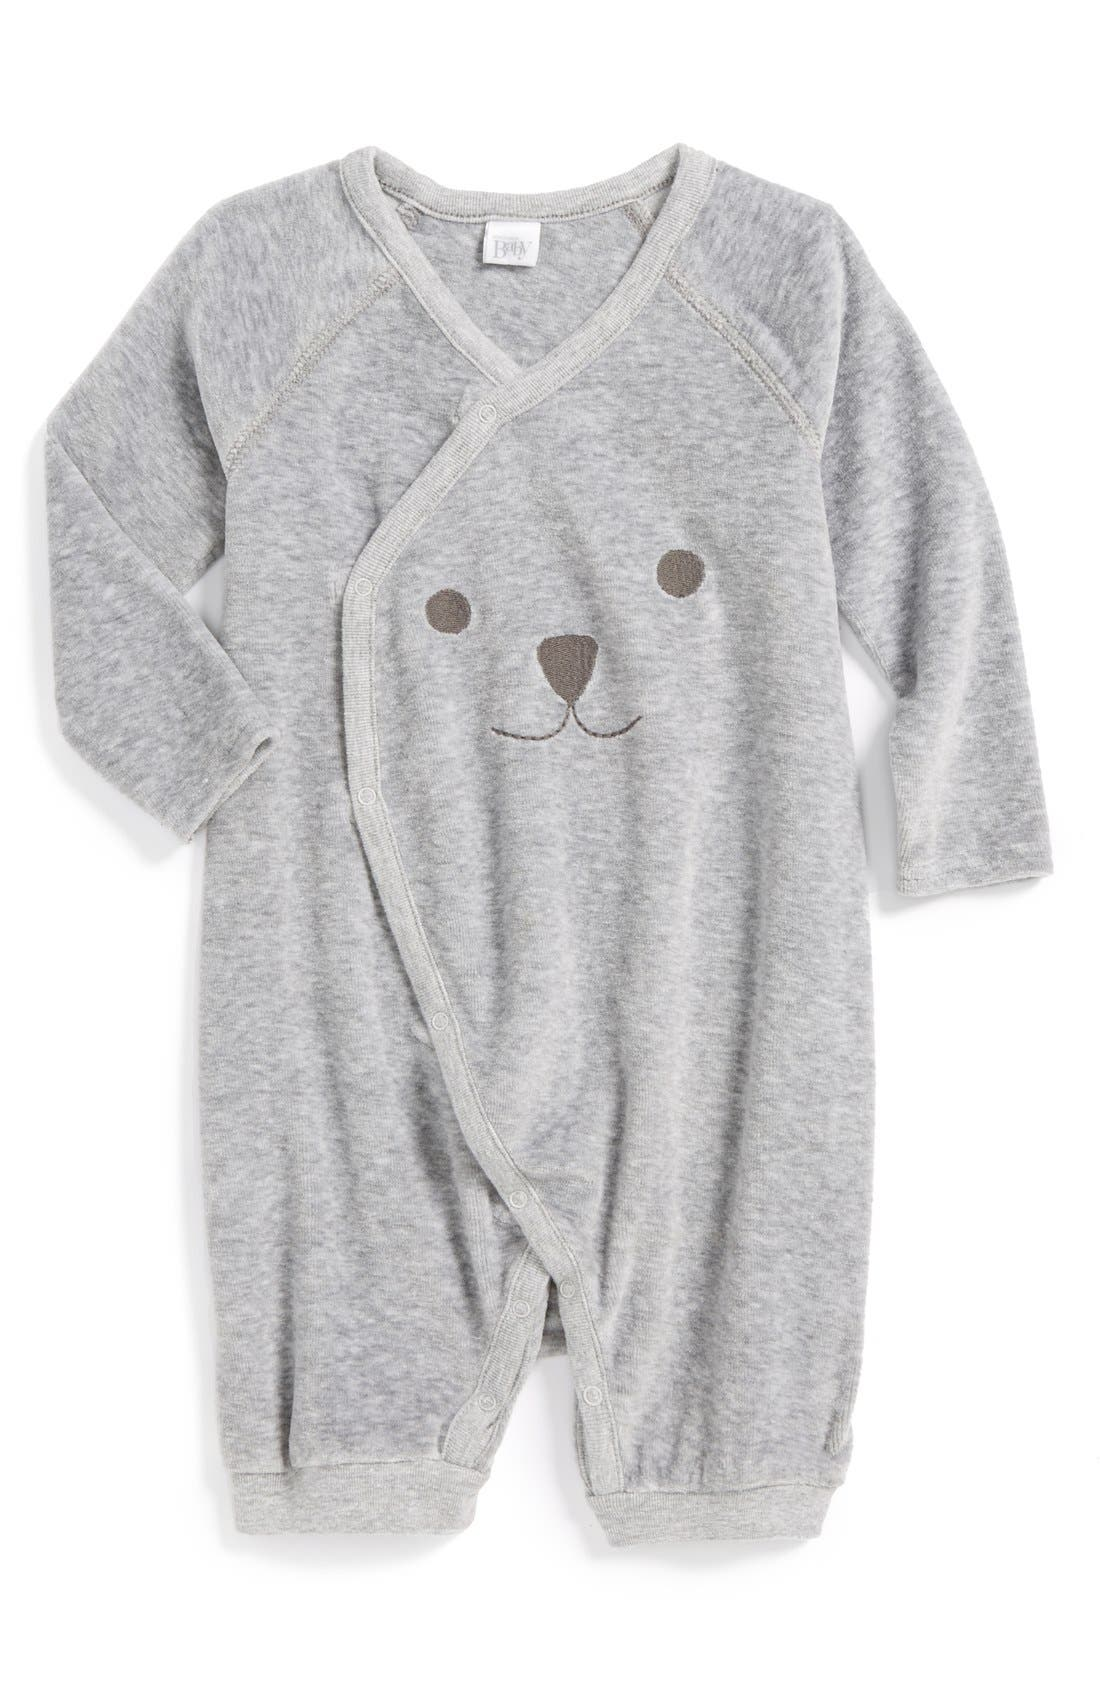 Alternate Image 1 Selected - Nordstrom Baby Velour Wrap Romper (Baby) (Nordstrom Exclusive)